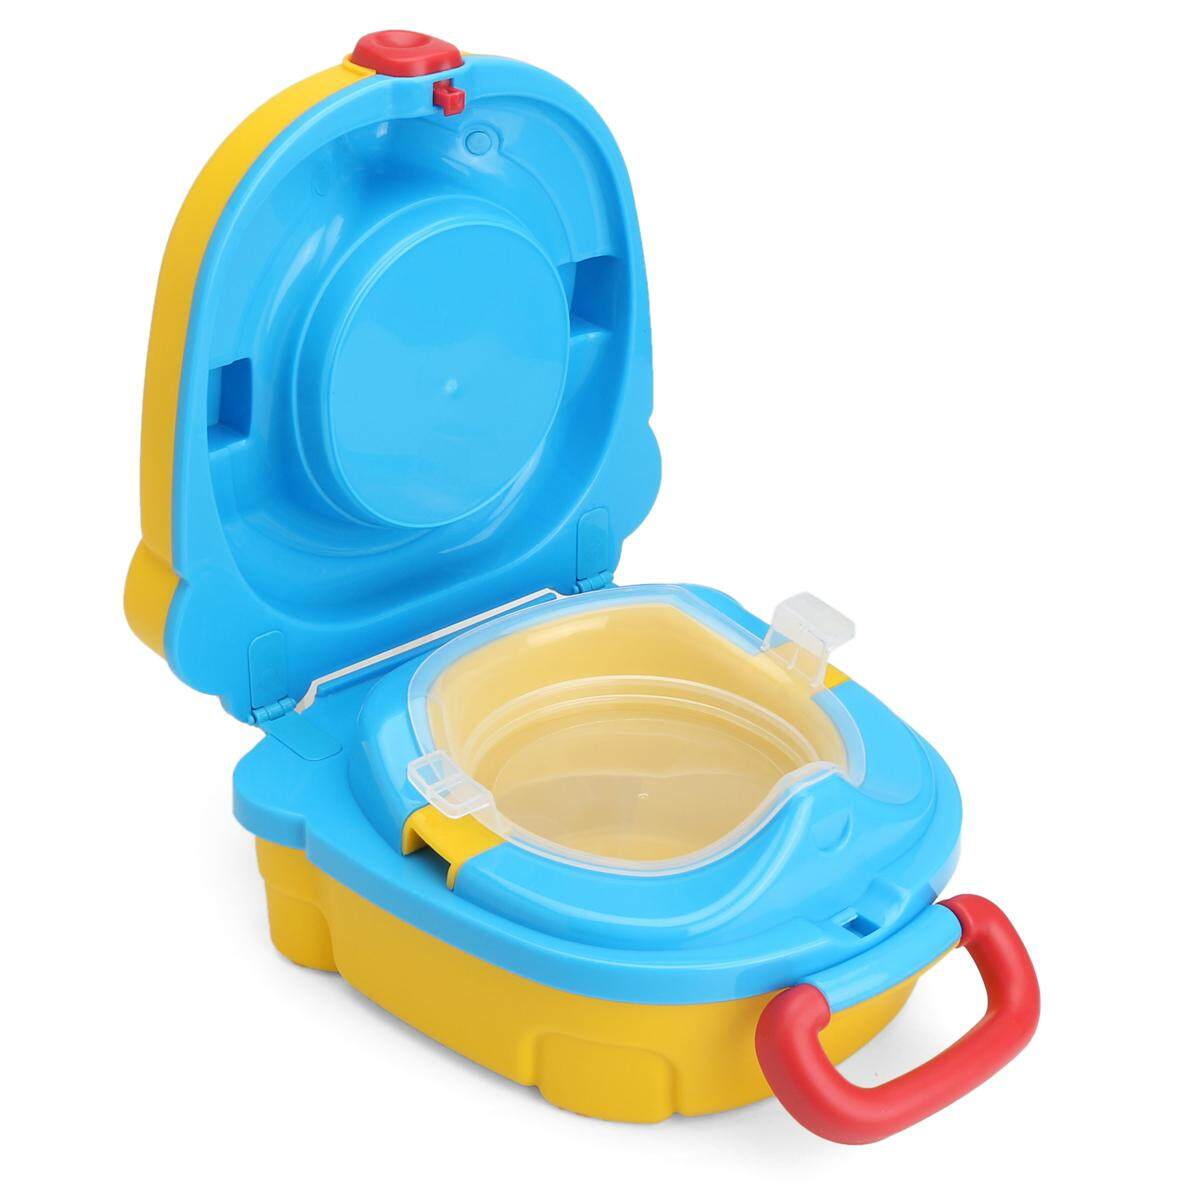 Kid Baby Toddler Portable Travel Potty Urinal Toilet Pee Pot Training Seat Chair Yellow - Intl By Qiaosha.